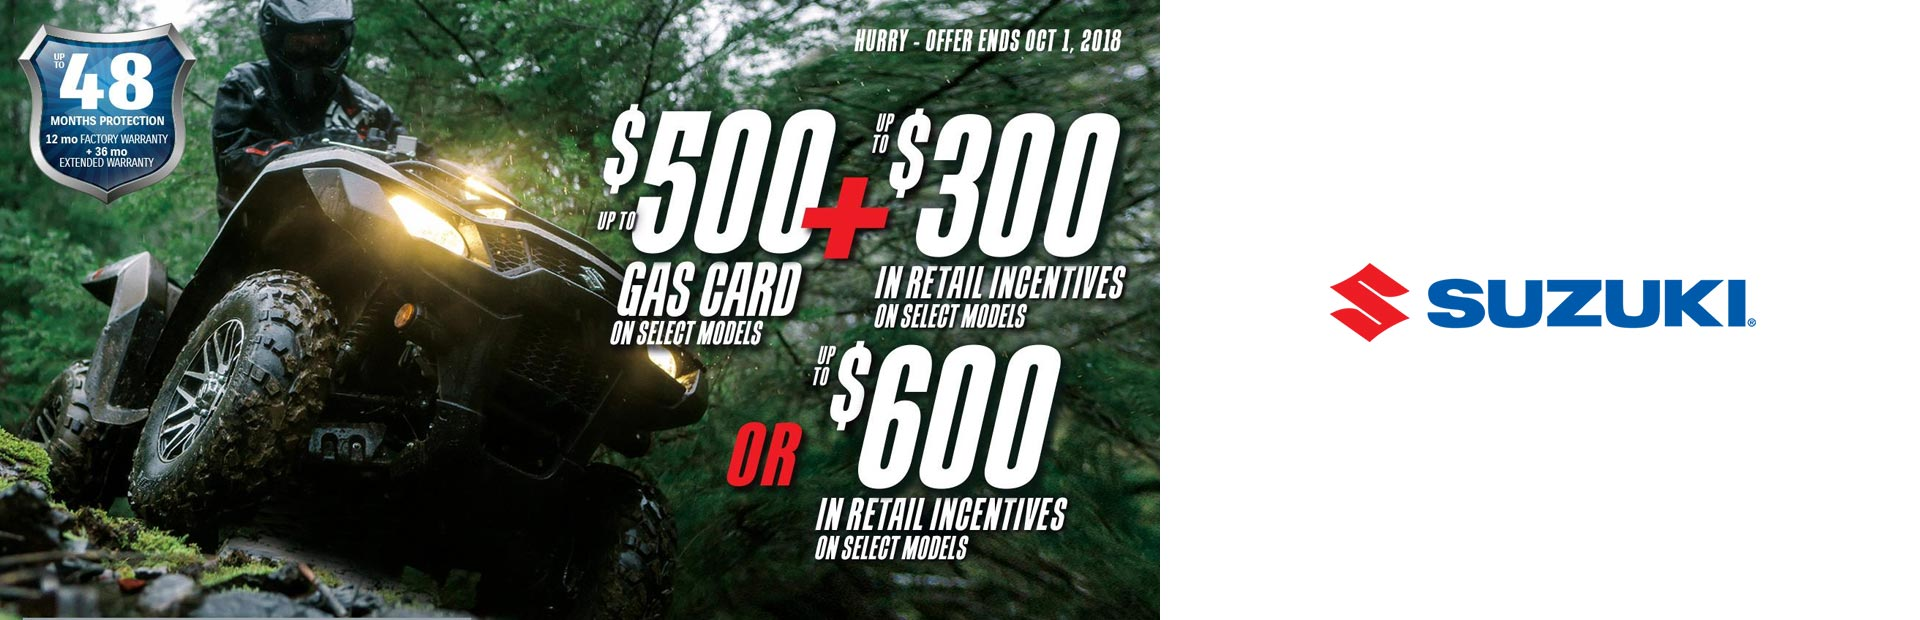 Suzuki: Suzuki Fuel the Ride Summer Savings - ATV